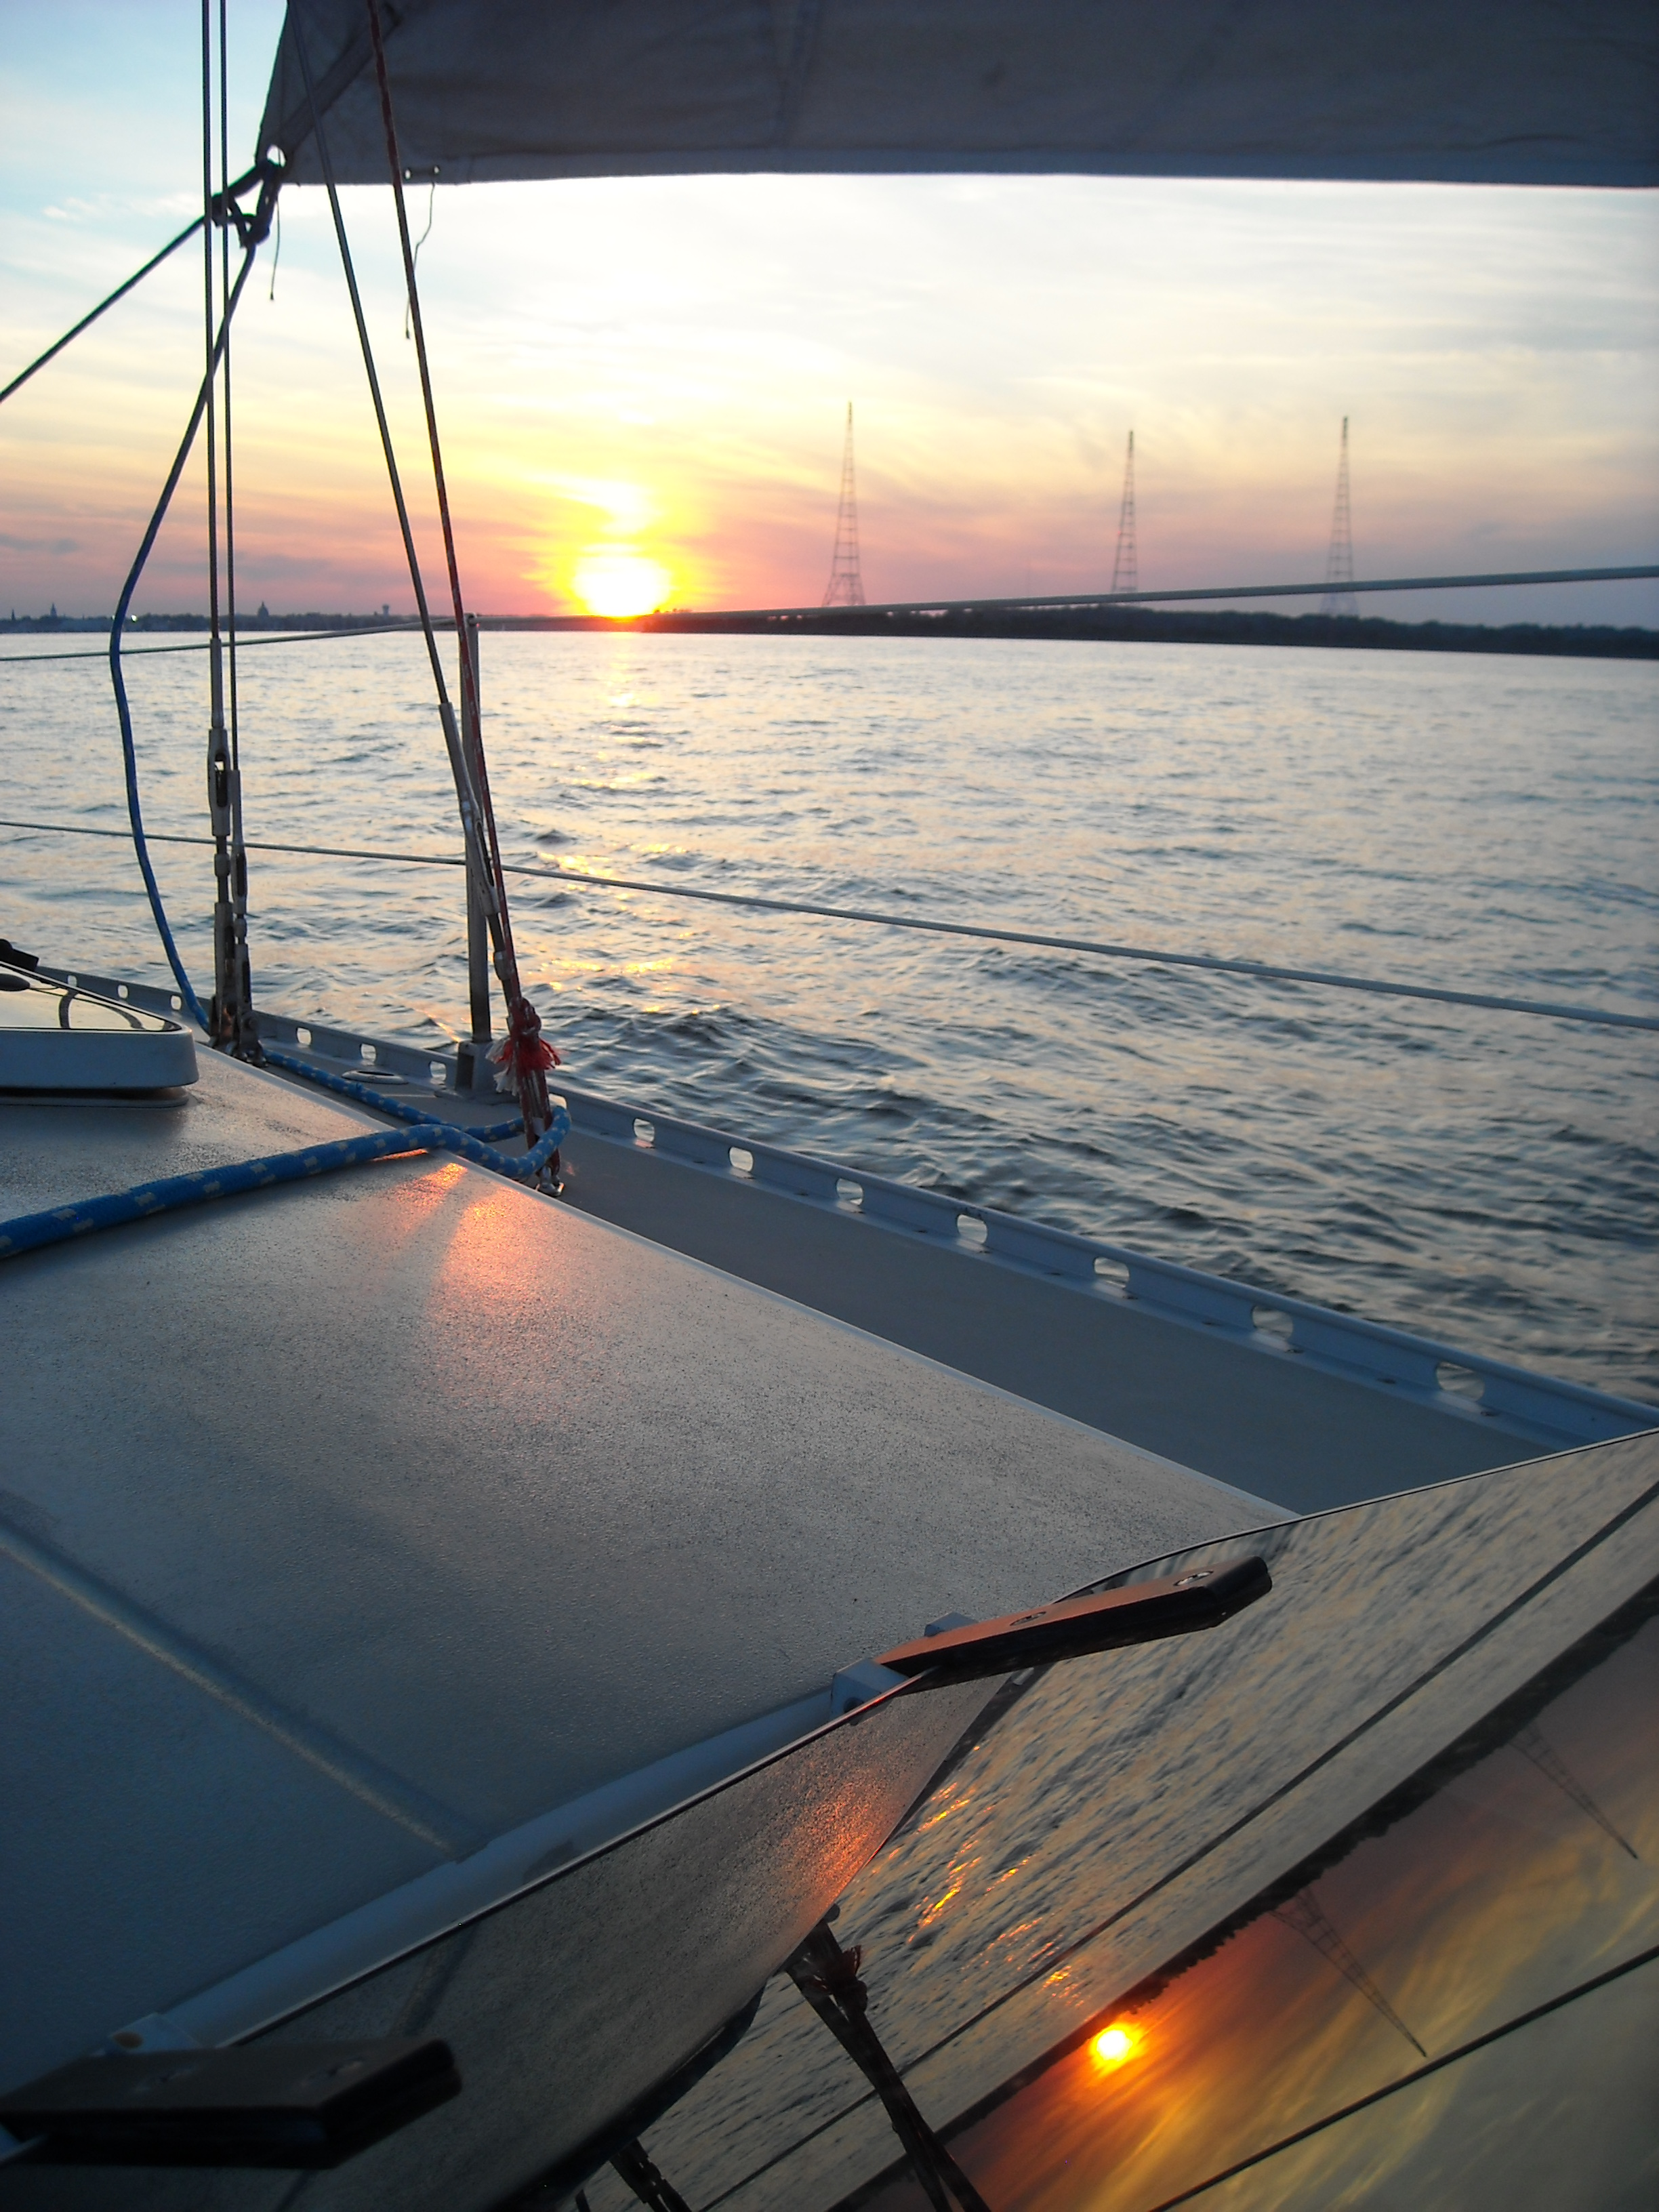 The Summer Sailstice: Free and Open to the Whole World